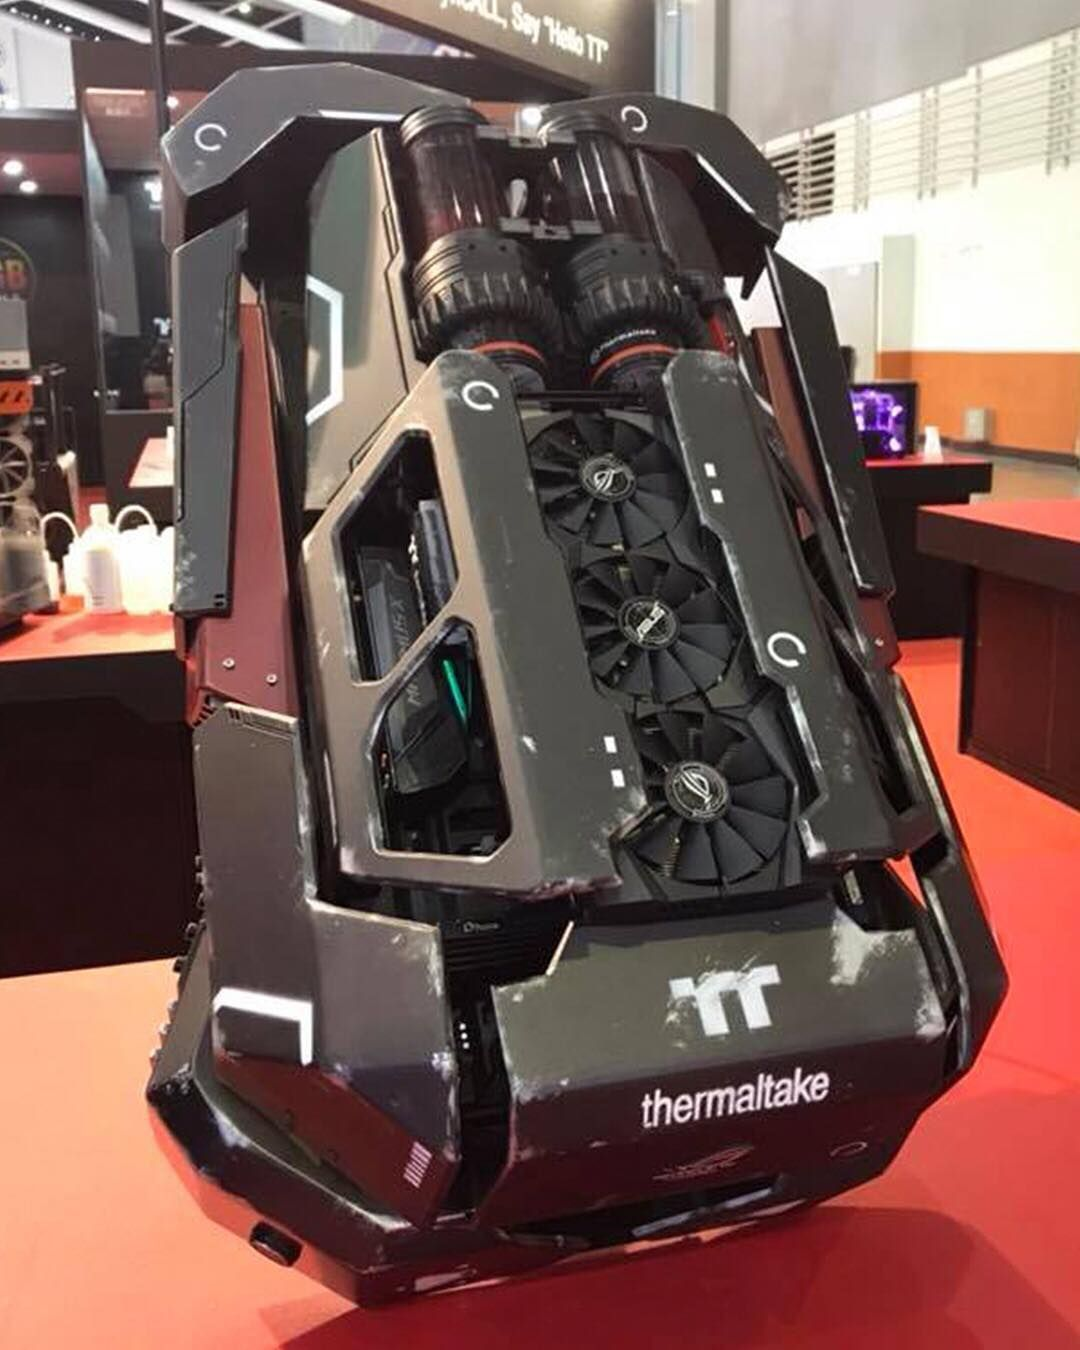 What do you think about this computer? Credit Thermaltake